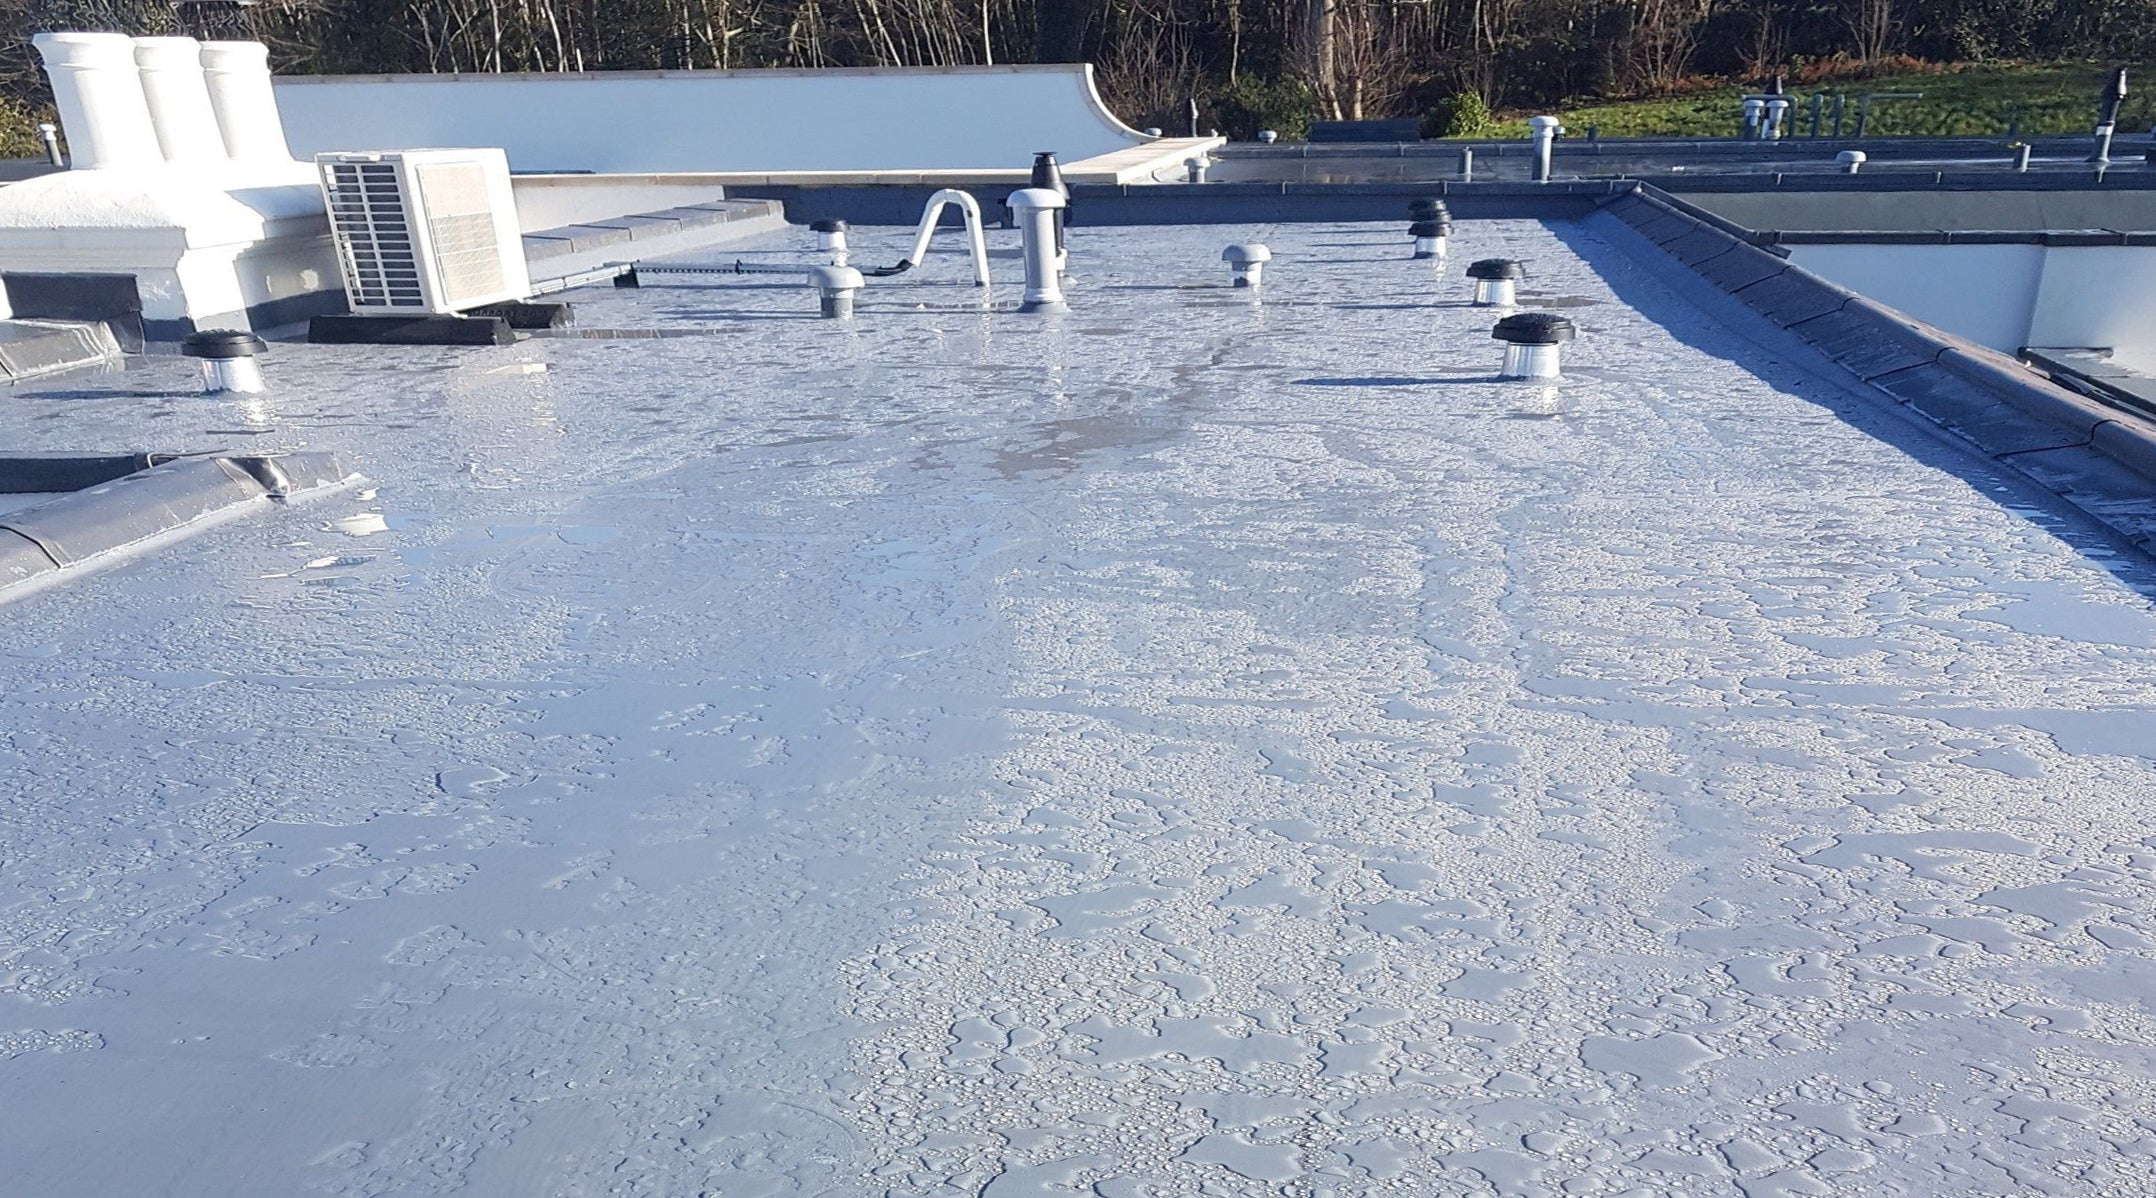 Liquid SilaCote flat roof membranes and structural waterproof coating specialists. Hand or spray applied to new and refurbished flat roofing for long lasting asset protection. Fully BBA and ETAG compliant